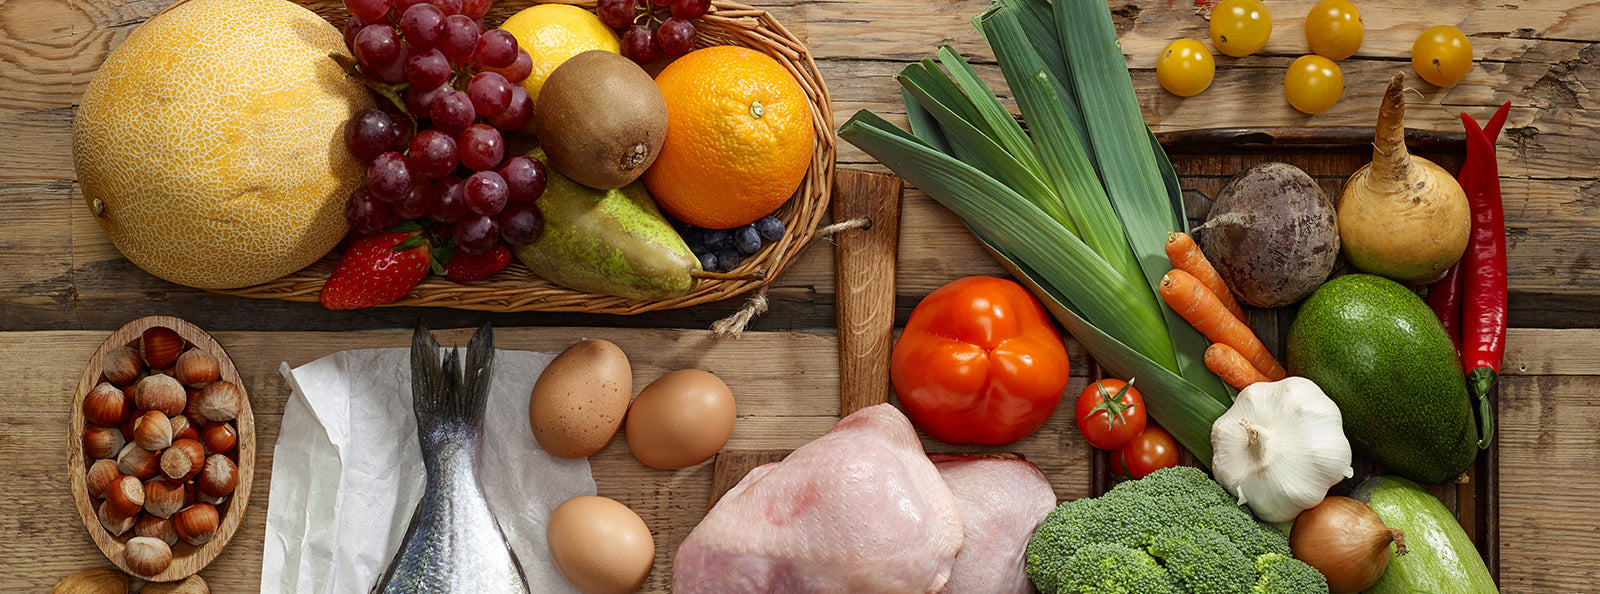 5 Steps to Transition into a Paleo Lifestyle